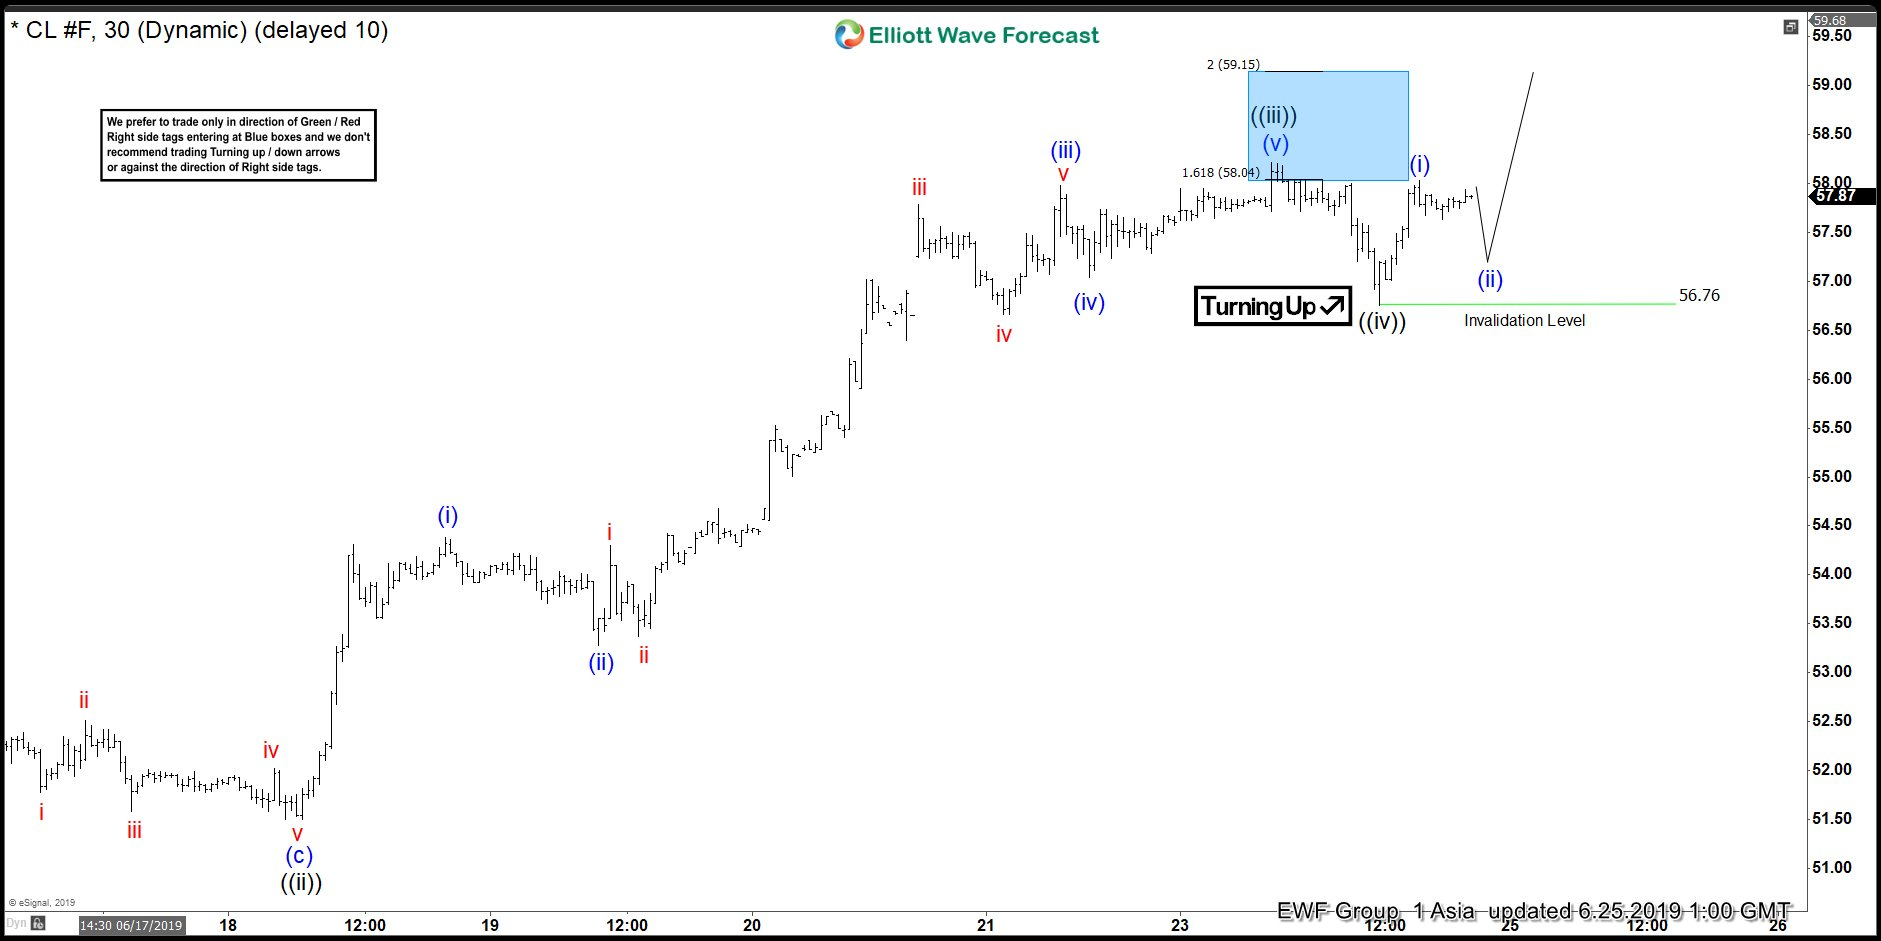 Oil Elliott Wave View: Impulsive Rally in Progress